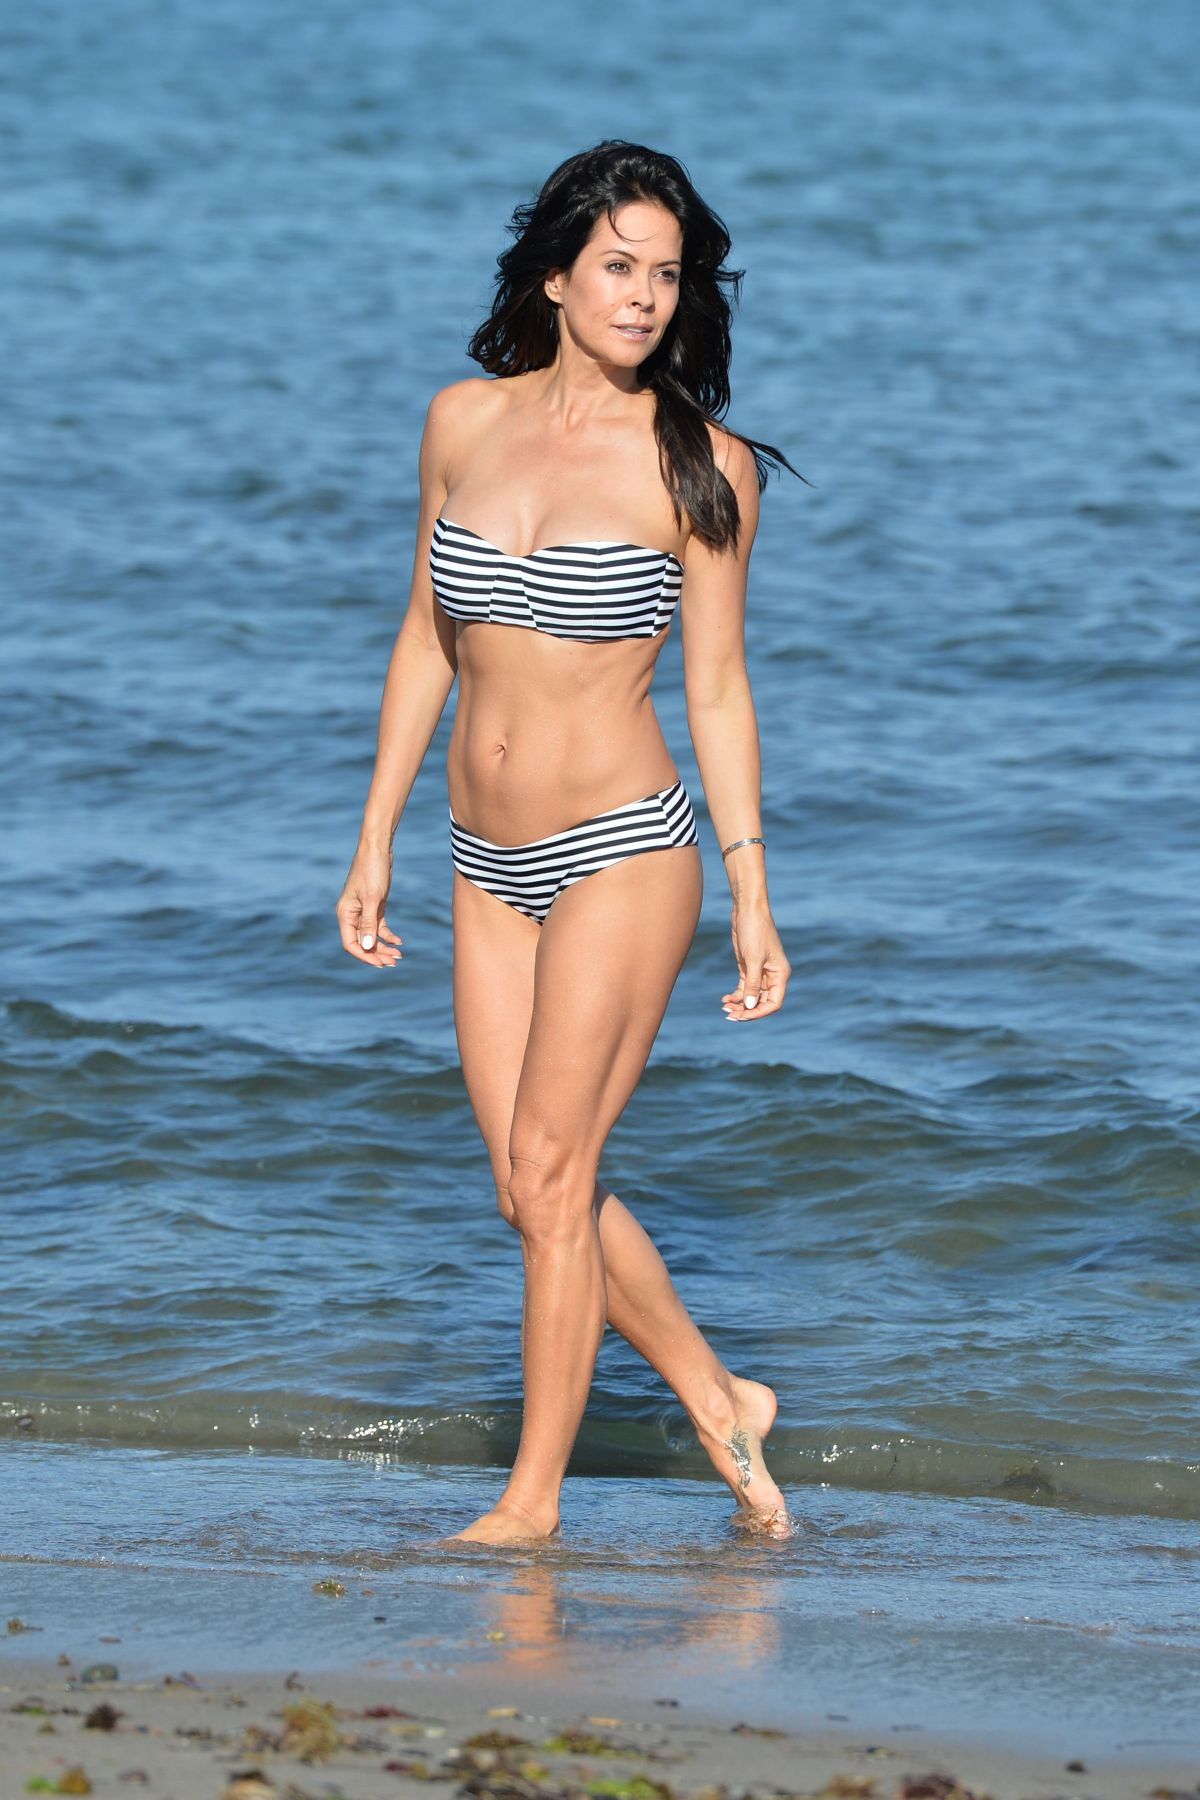 Hottest Brooke Burke Photos - Ranker